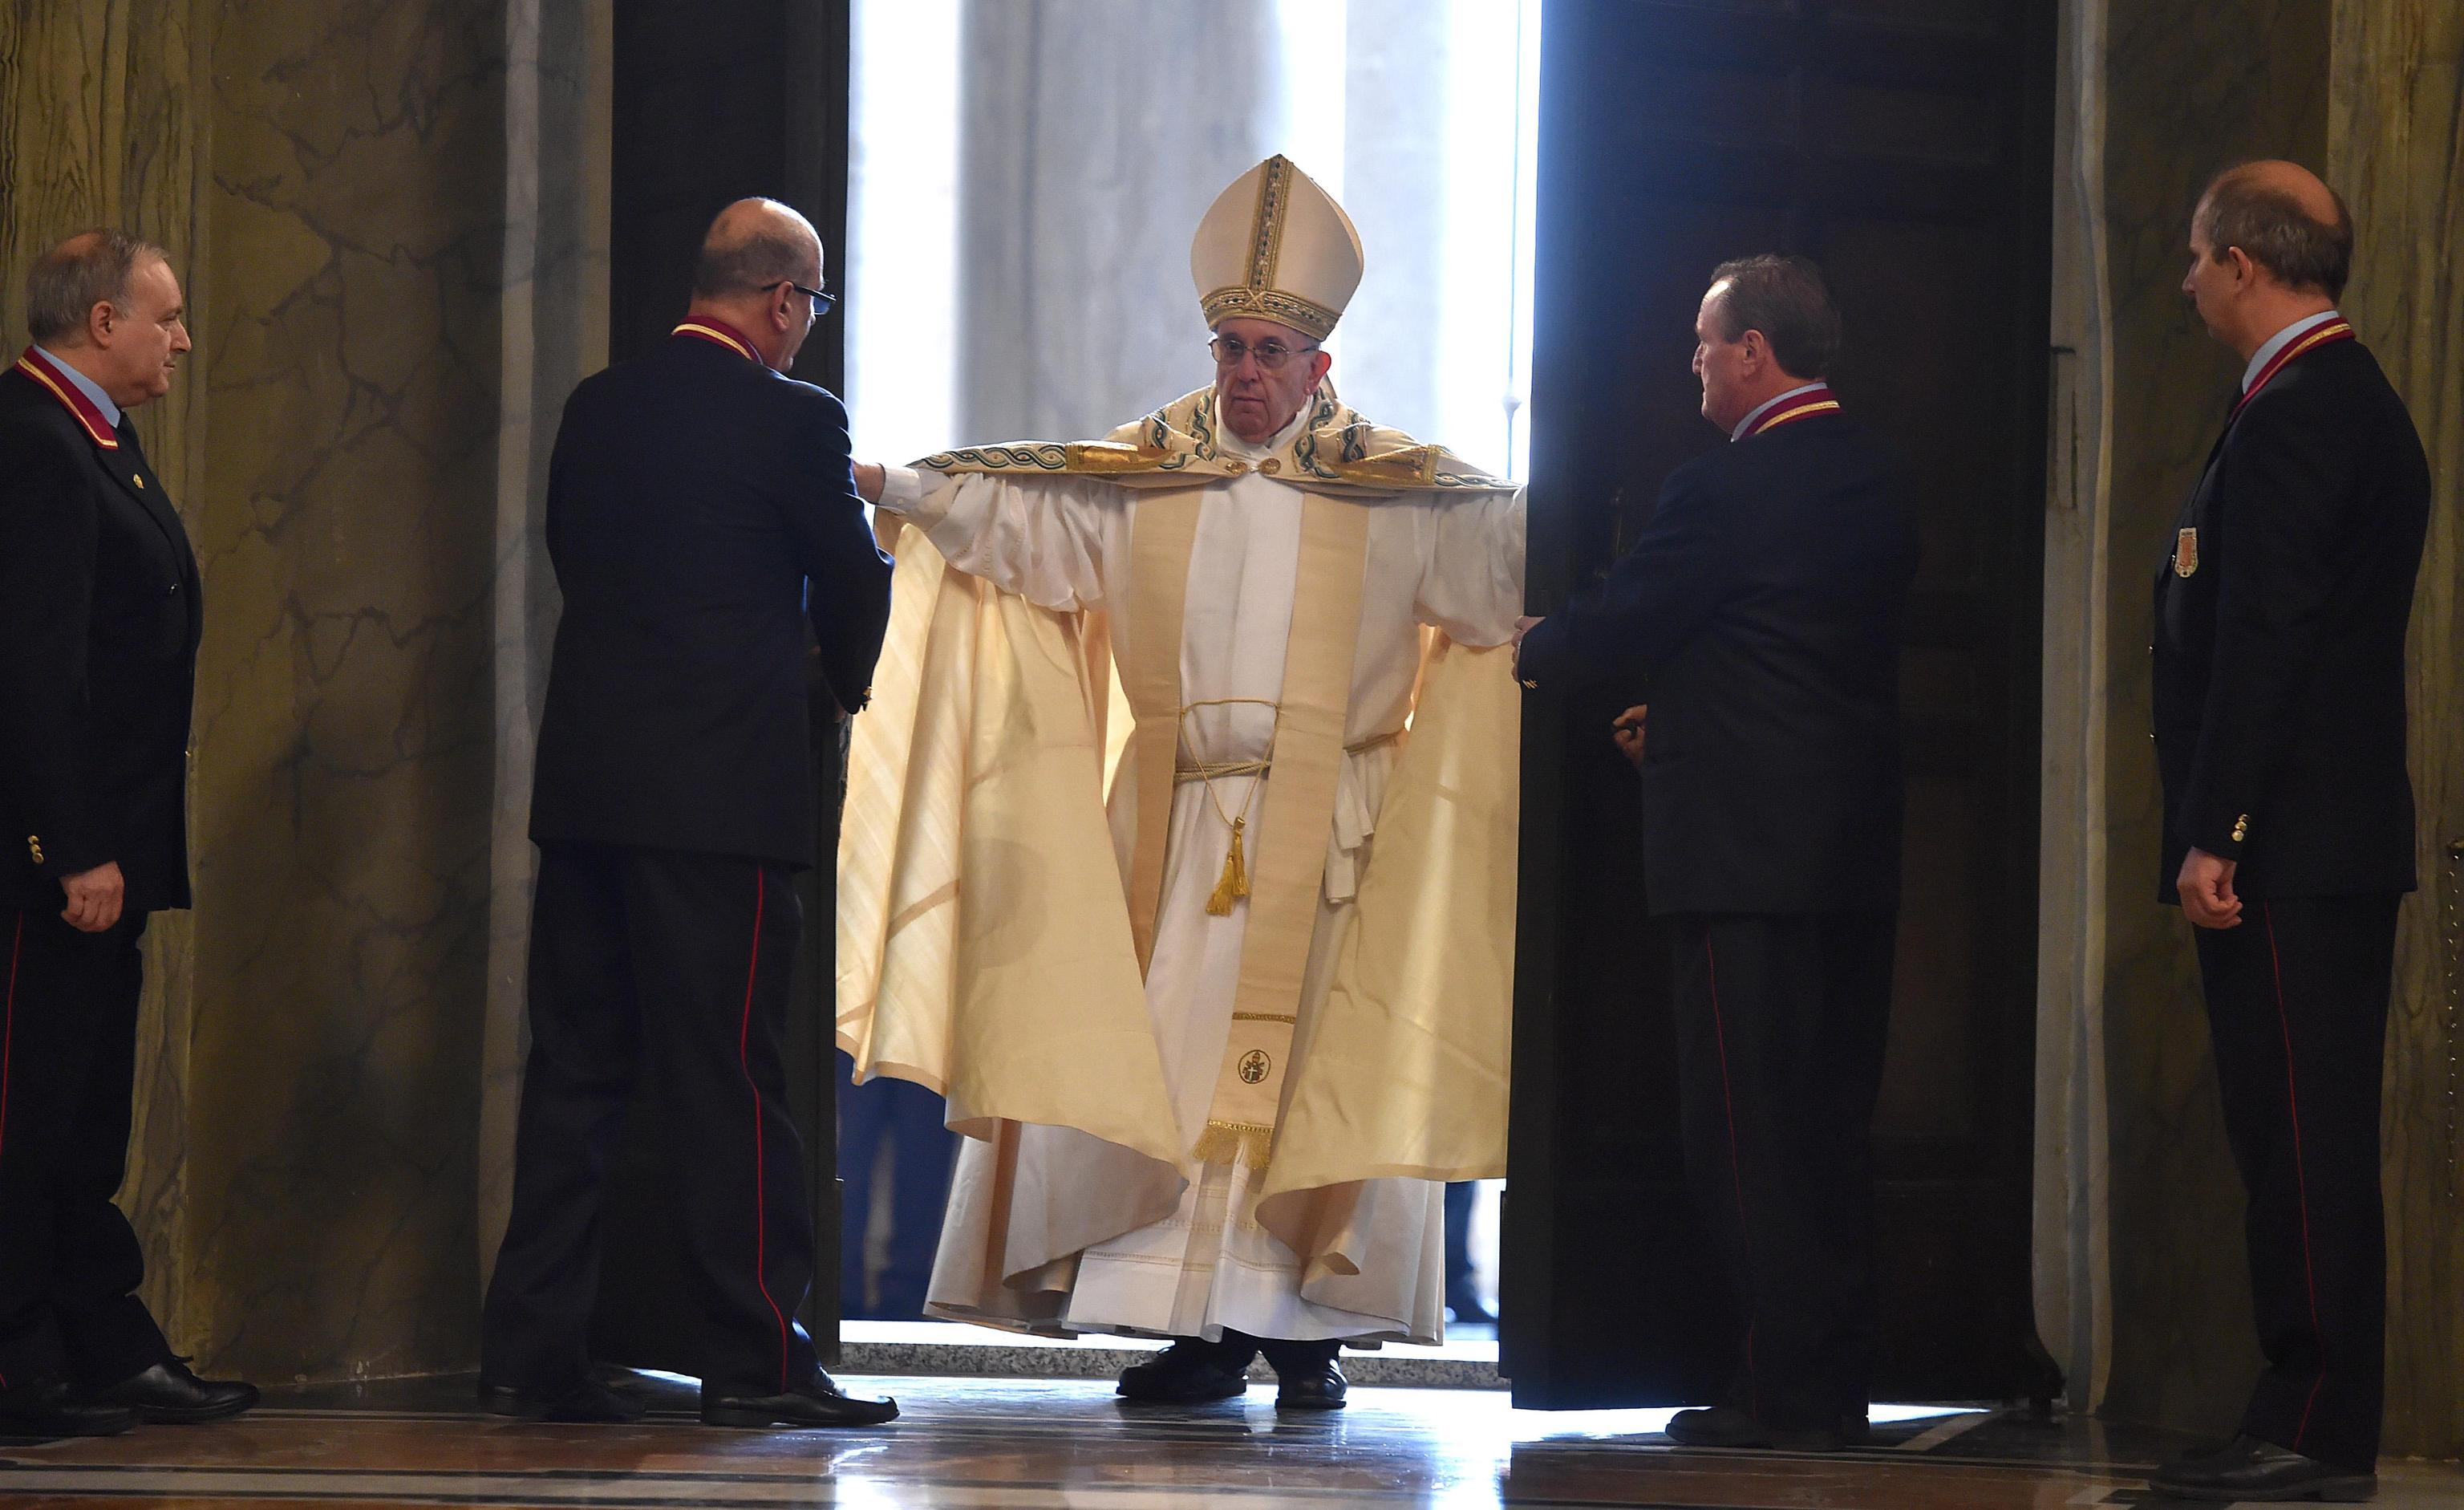 Pope Francis opens the Holy Door of Saint Peter's Basilica